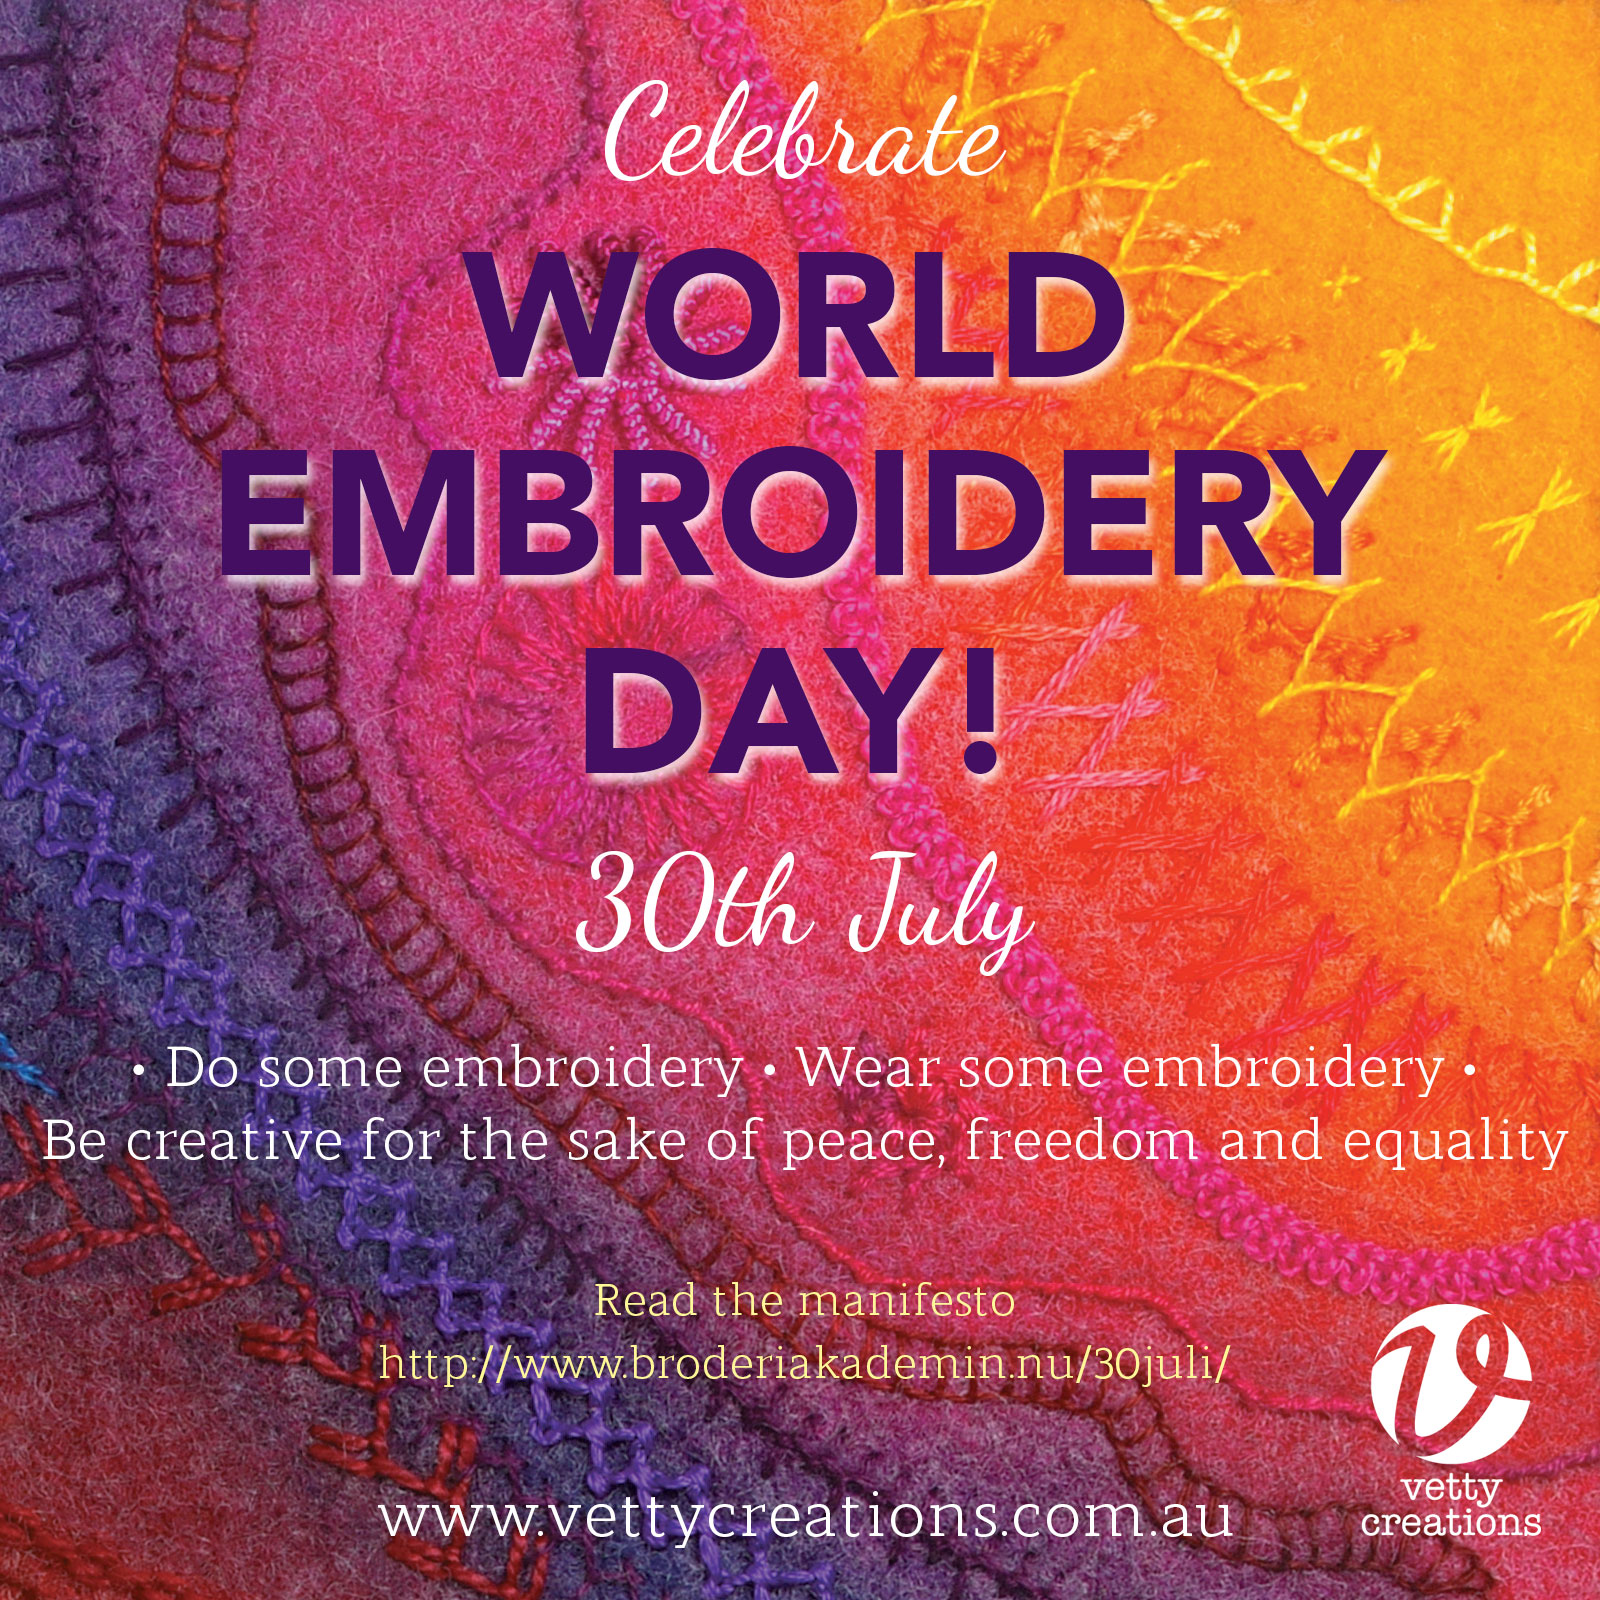 Celebrate World Embroidery Day 30th July